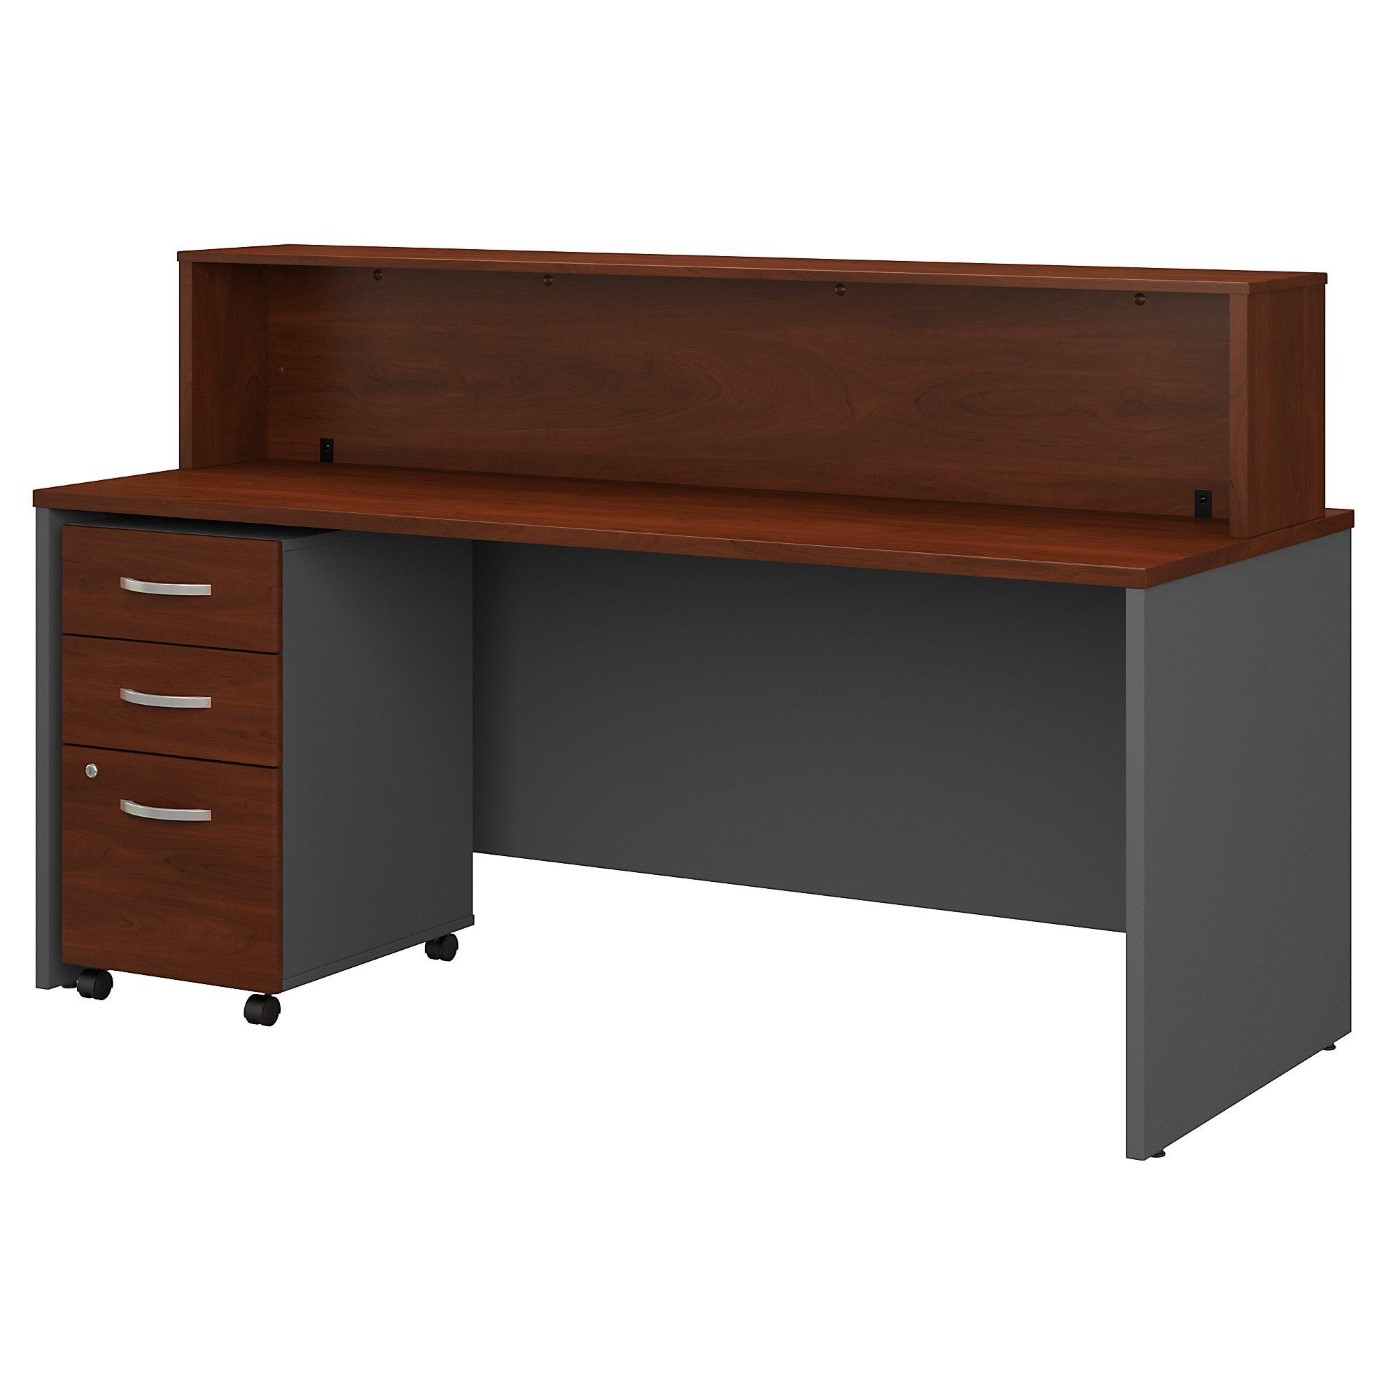 BUSH BUSINESS FURNITURE SERIES C 72W X 30D RECEPTION DESK WITH MOBILE FILE CABINET. FREE SHIPPING</font></b></font>&#x1F384<font color=red><b>ERGONOMICHOME HOLIDAY SALE - ENDS DEC. 17, 2019</b></font>&#x1F384